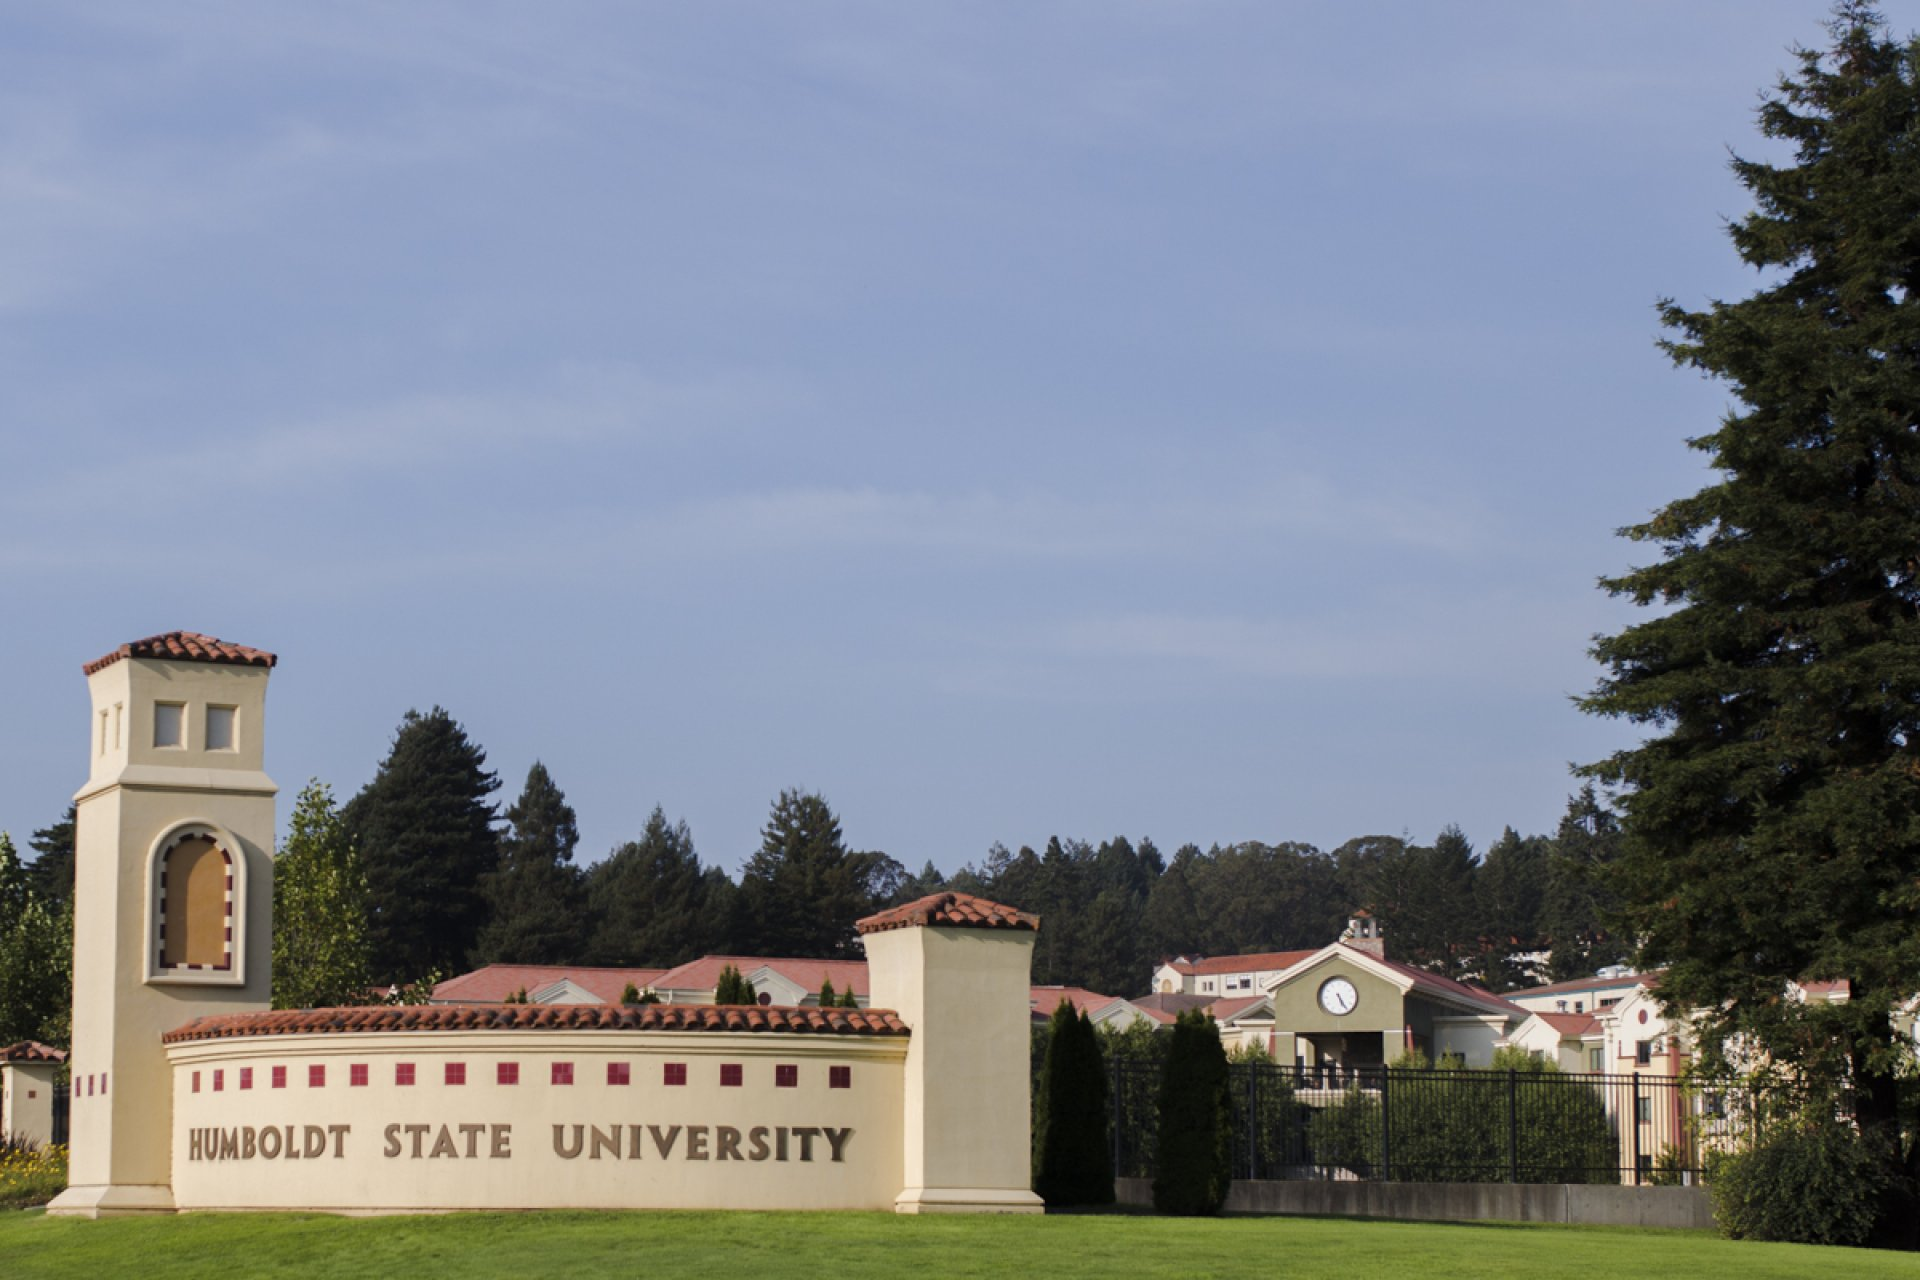 The view of Humboldt State University from 14th Street. | File photo by Lauren Shea